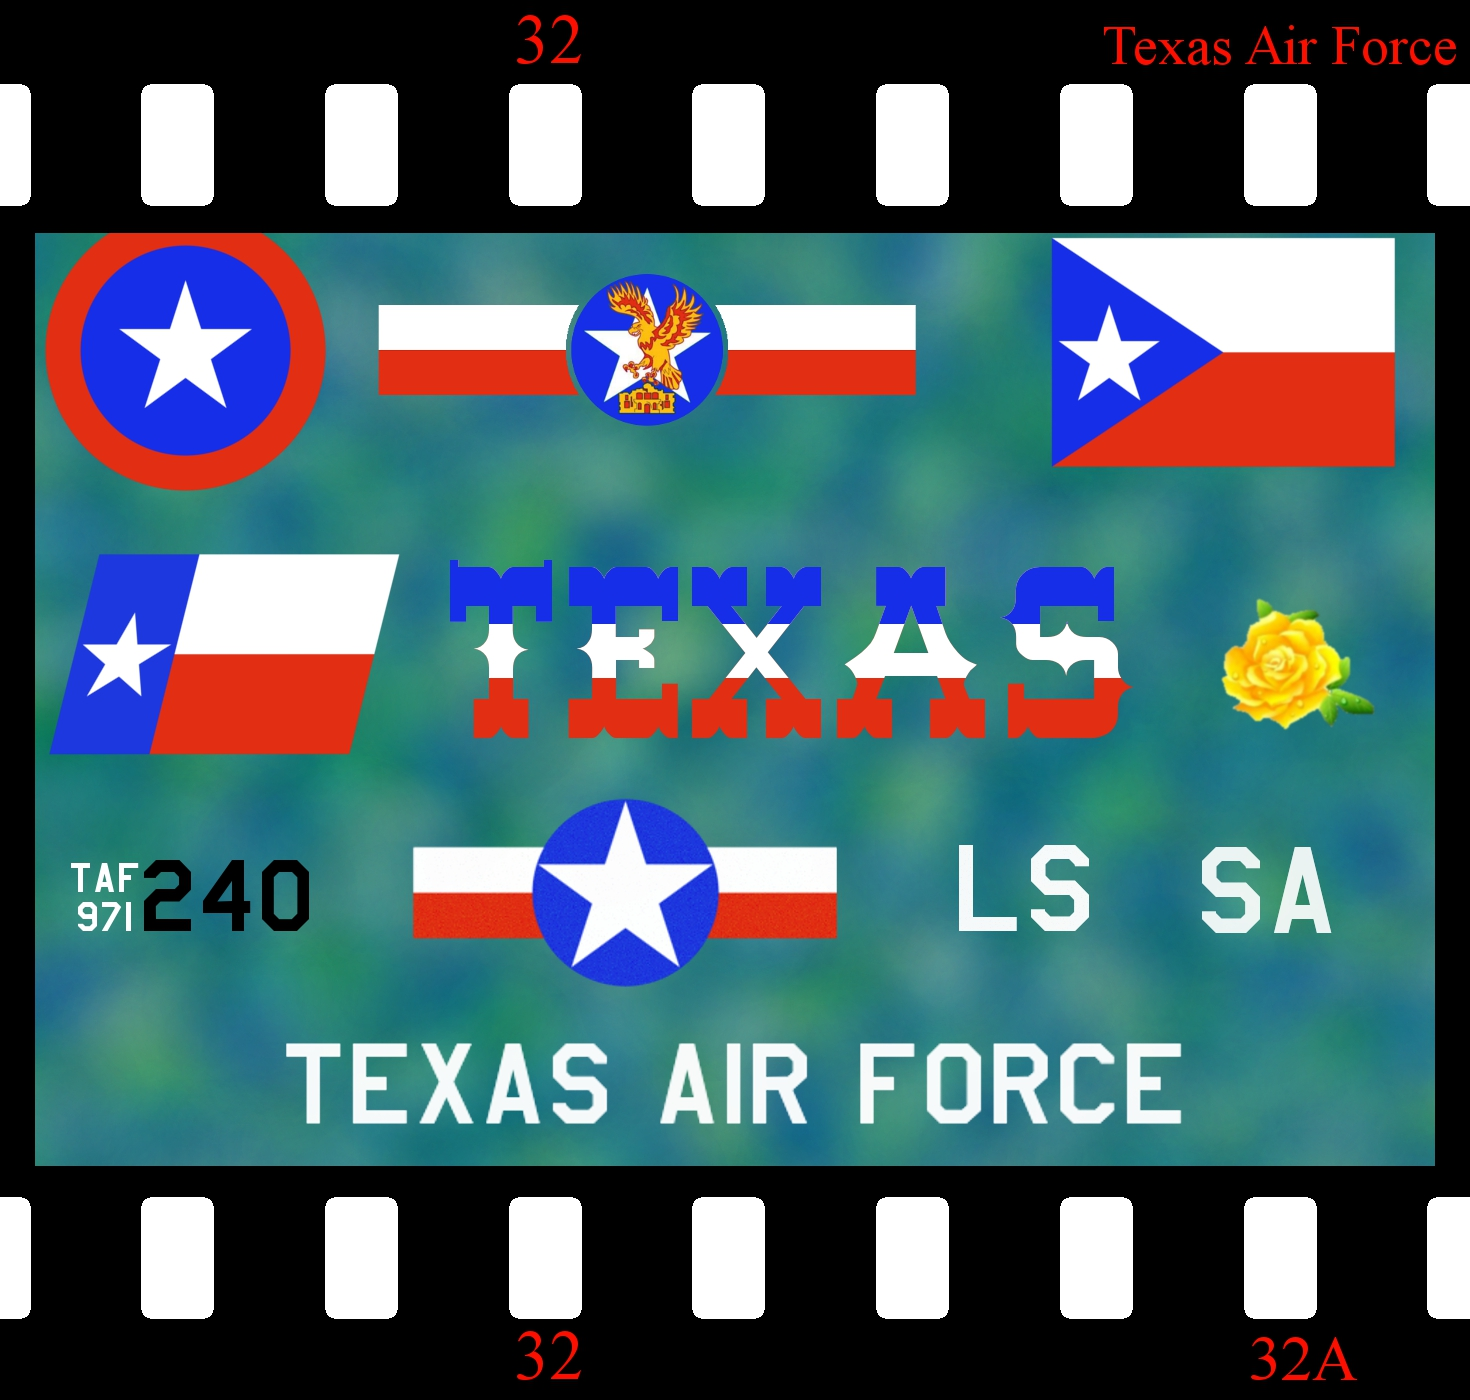 [Fictional] Texas Air Force Decals